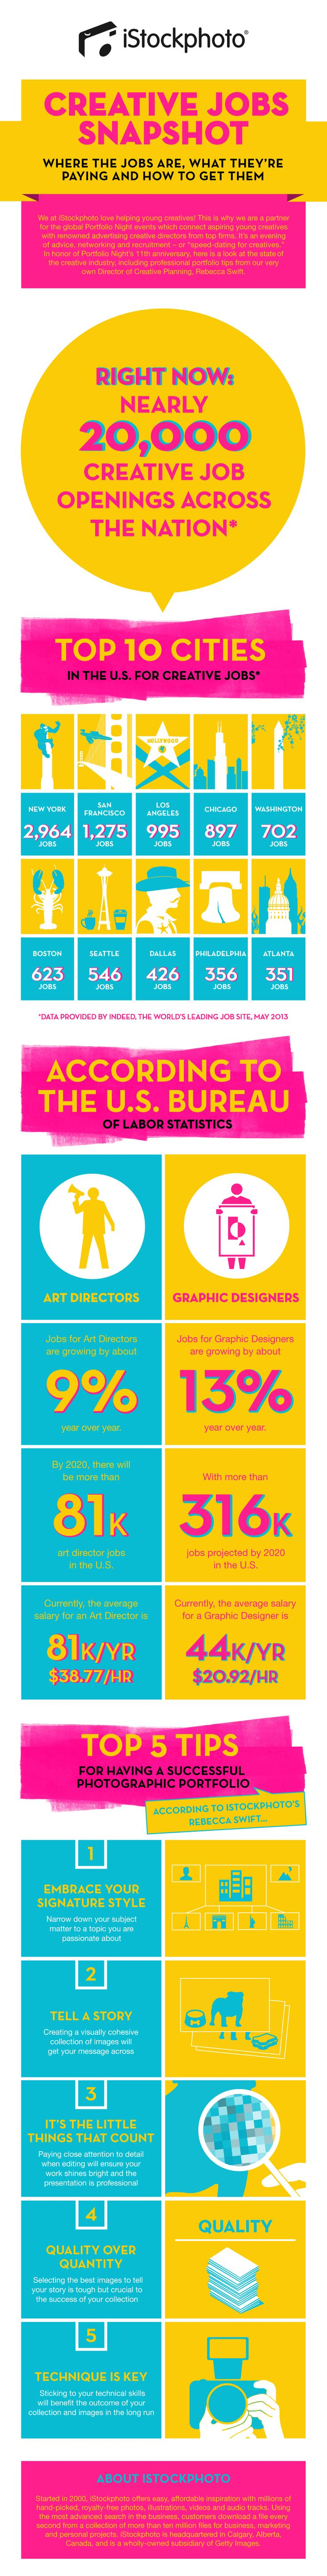 17 best images about career ideas inside job istockphoto has developed a snapshot of the creative jobs industry